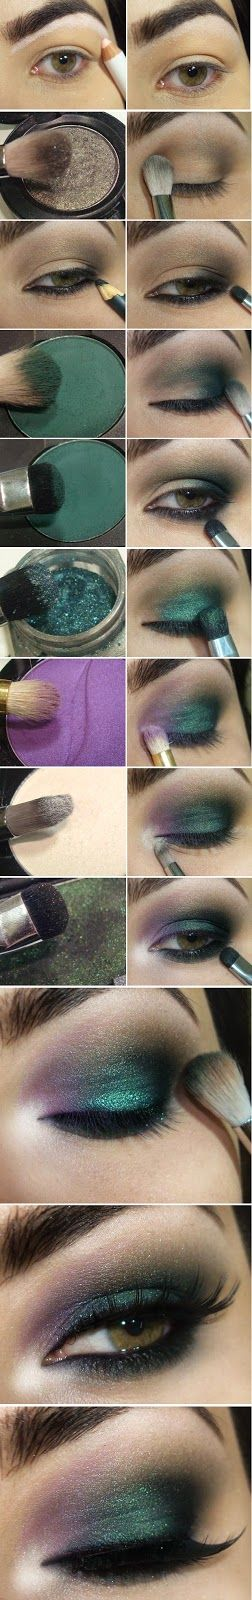 Wonderful Emerald Green Shade , Moss Green and Violet Makeup Tutorials / Best LoLus Mkeup Fashion                                                                                                                                                                                 More